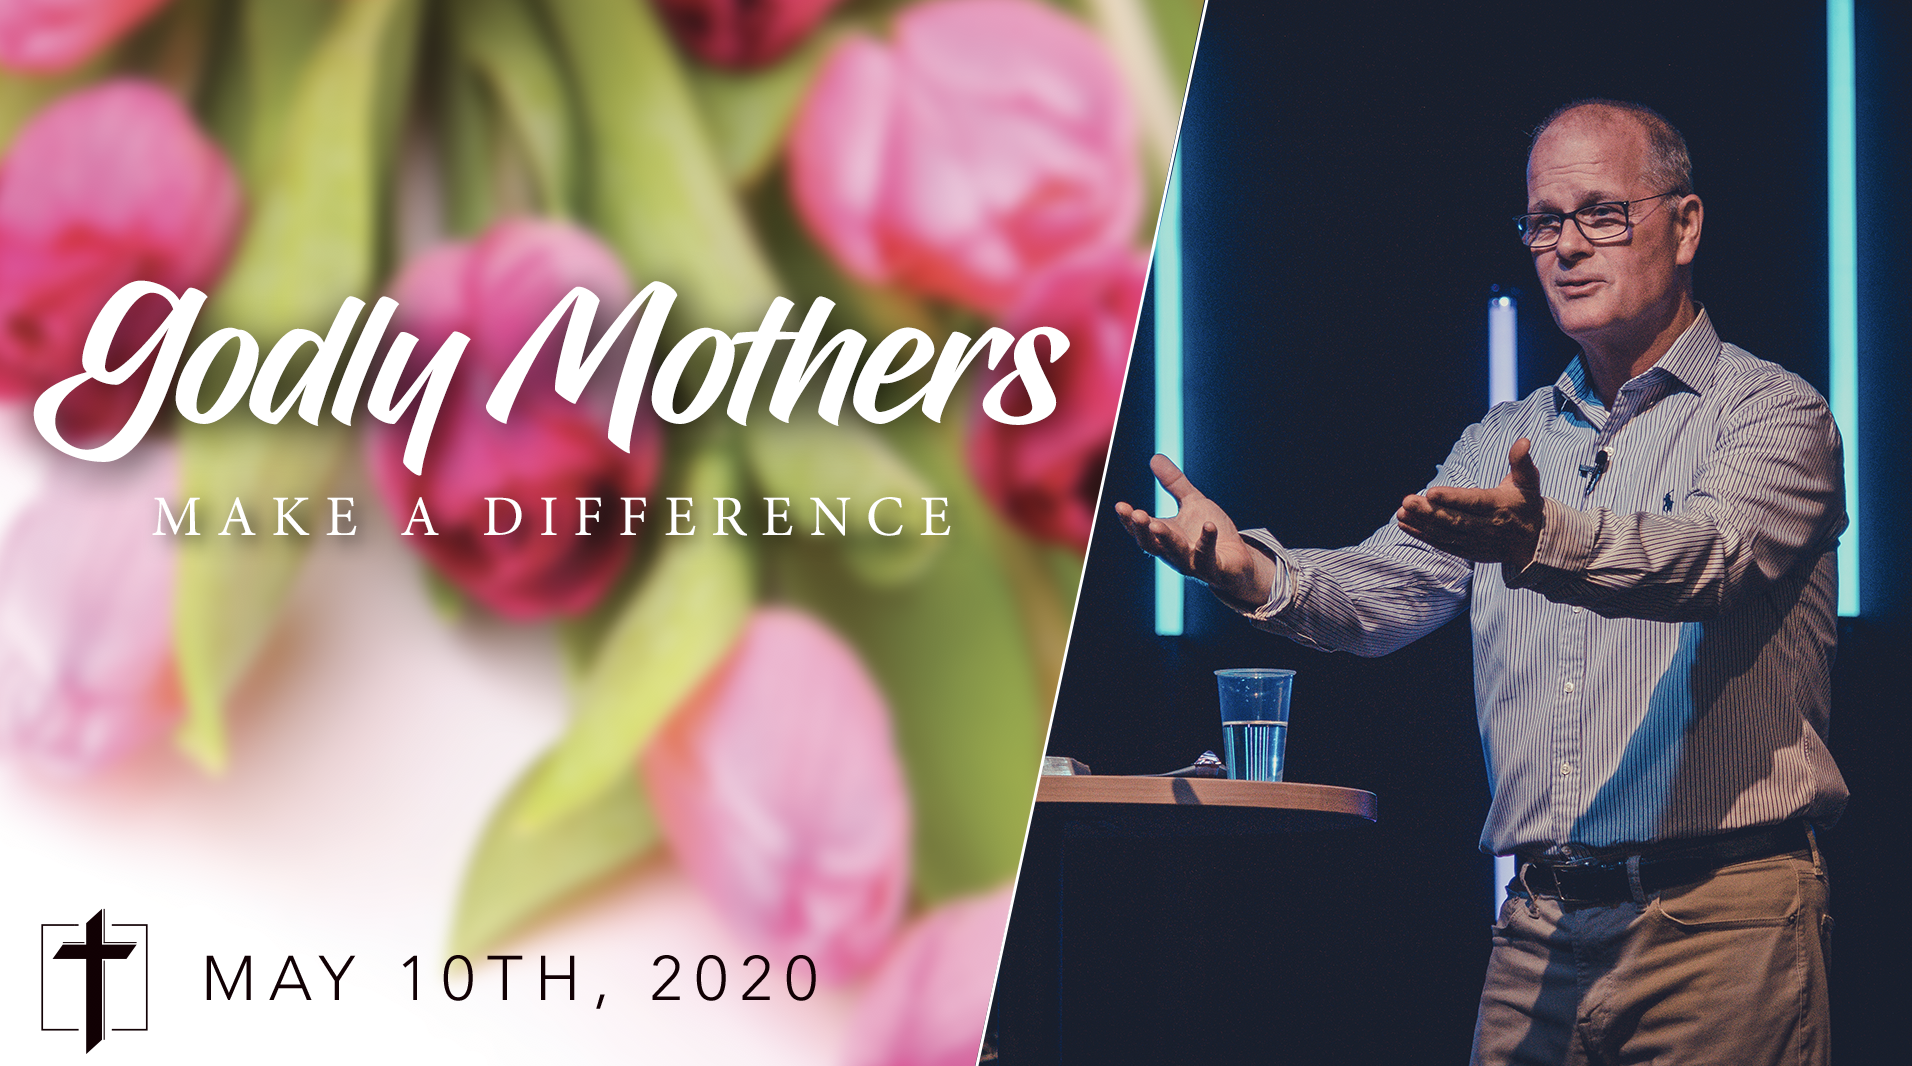 Godly Mothers Make A Difference